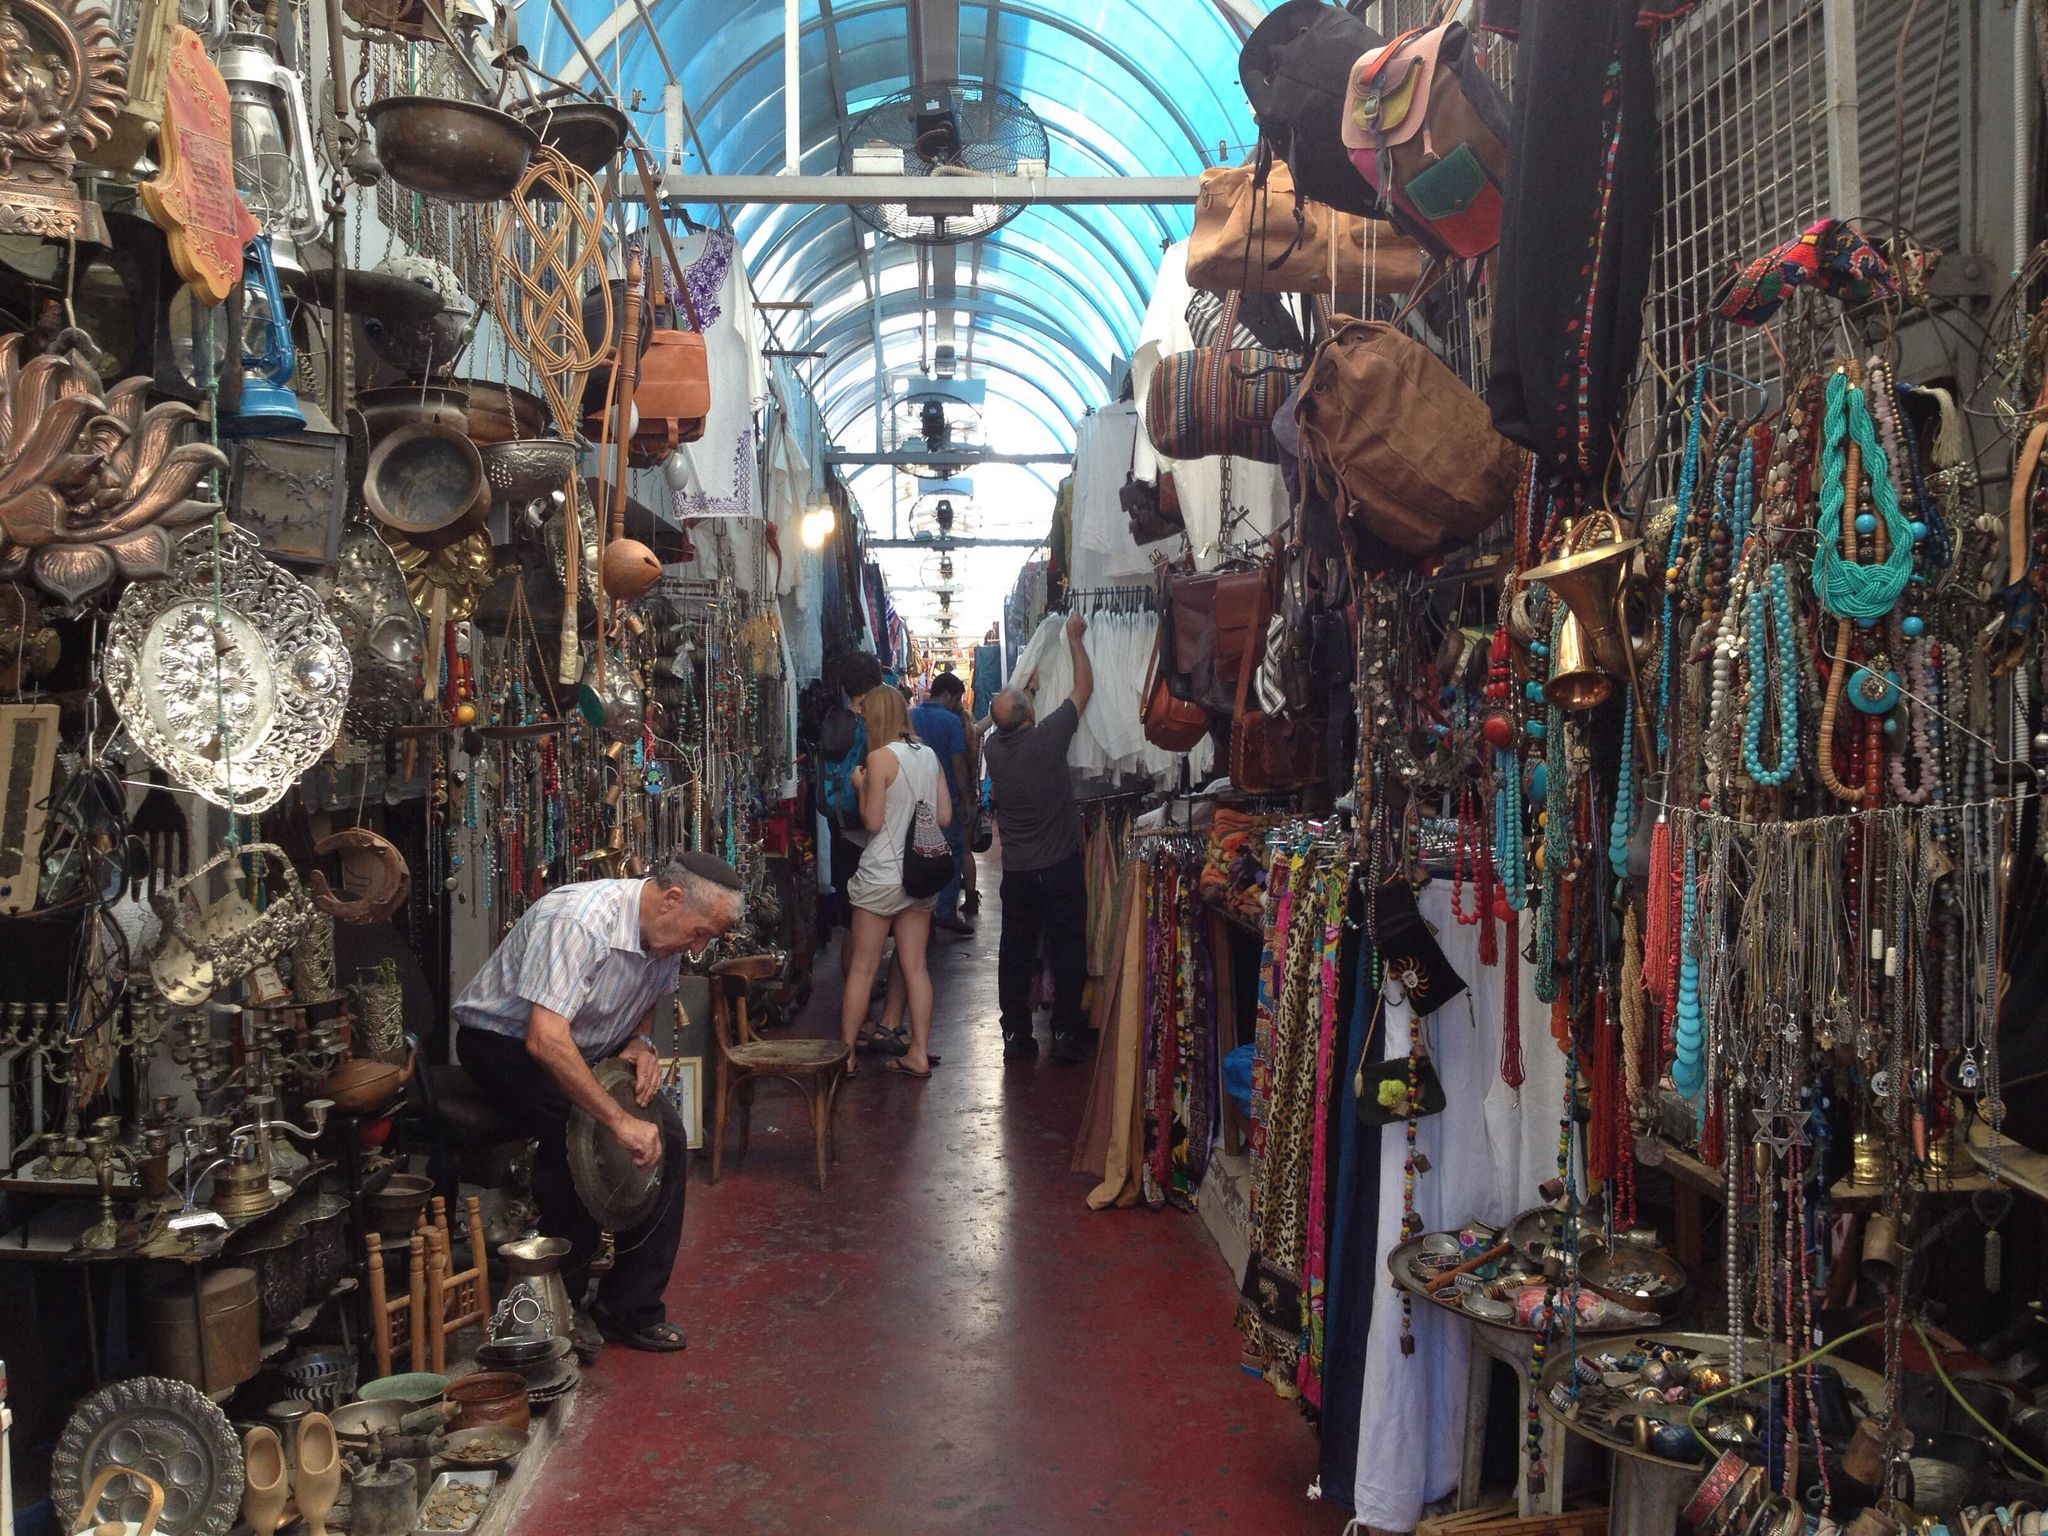 The flea market in Tel Aviv is located next to the clock tower in old Jaffa. Looking for an ancient typing machine or second-hand cloths and cute stuff?! This is the market for you!